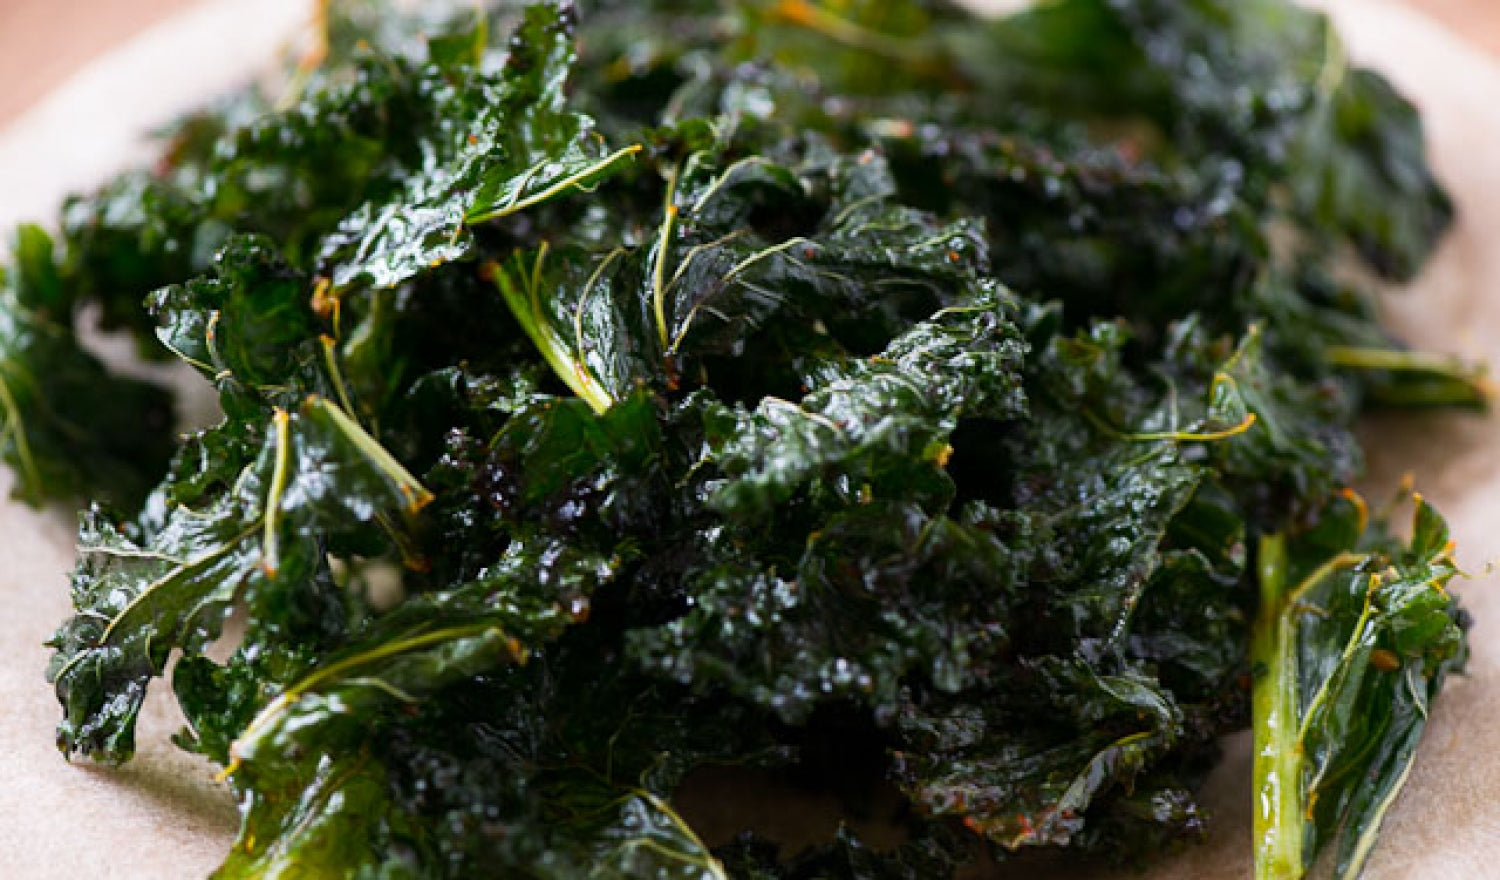 What part of kale is edible